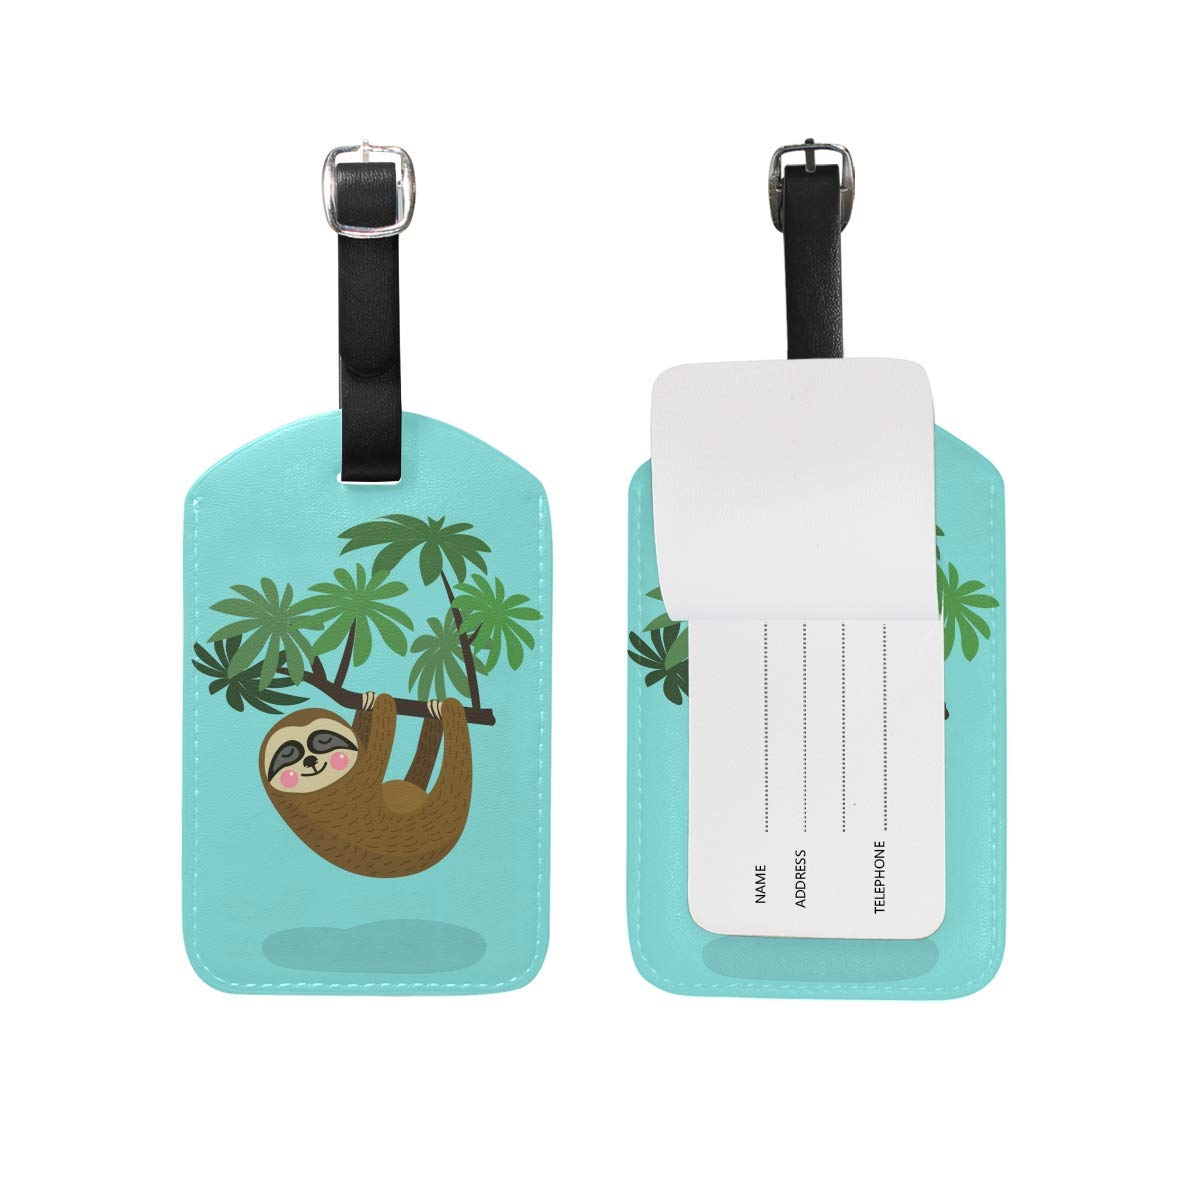 ASLGlicenseplateframeFG Luggage Tag Green Sloth Suitcases Ship Women Men Personalized Kid Label Travel ID Handbag Tag with Buckle Set Of 2